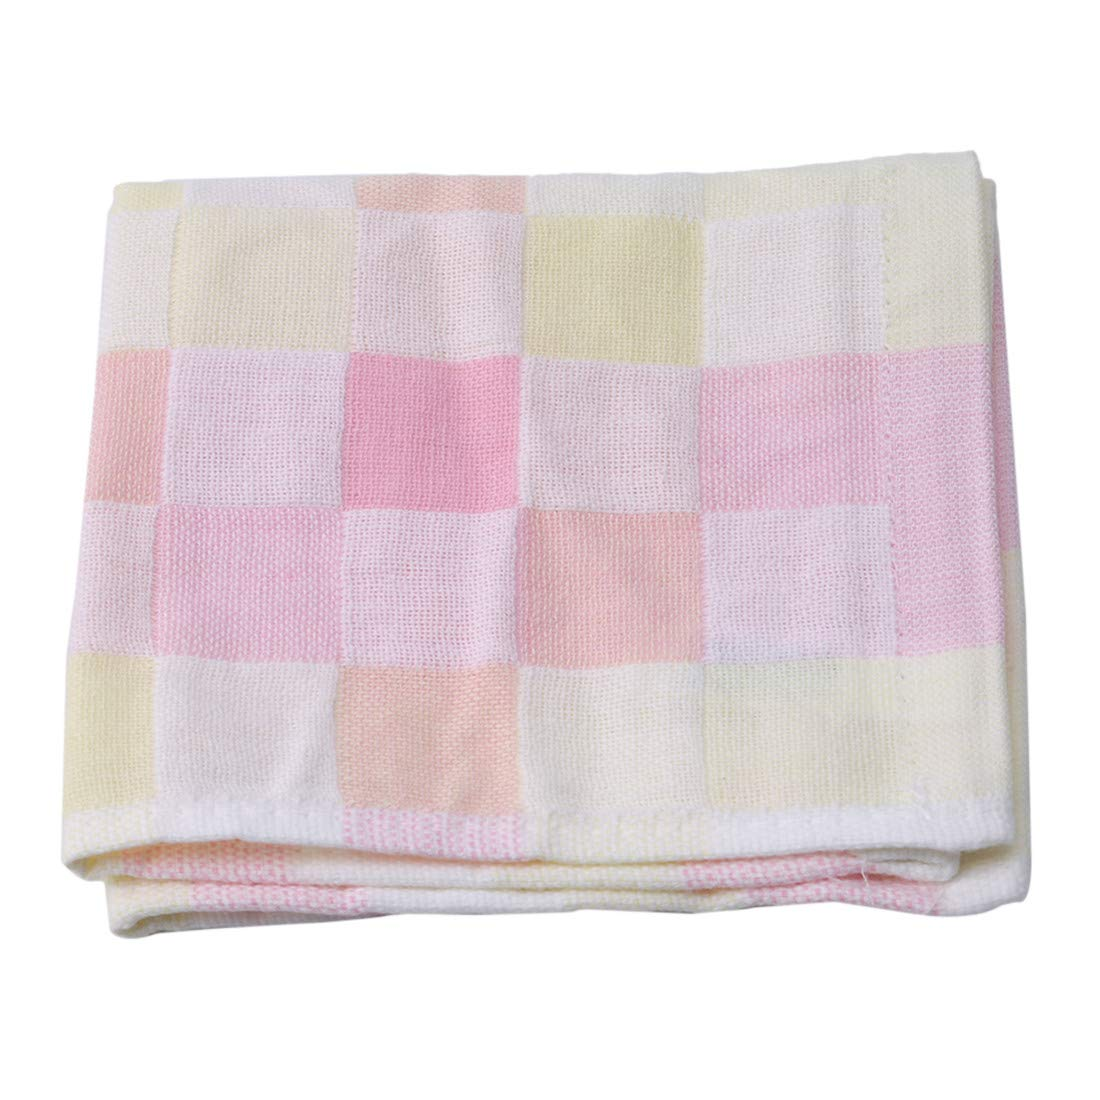 UINKE Square Washcloths Towel Kitchen Dish Cotton Cloth, Bath and Face Cleaning, Multi-Purpose Soft Cleaning Rags,Pink